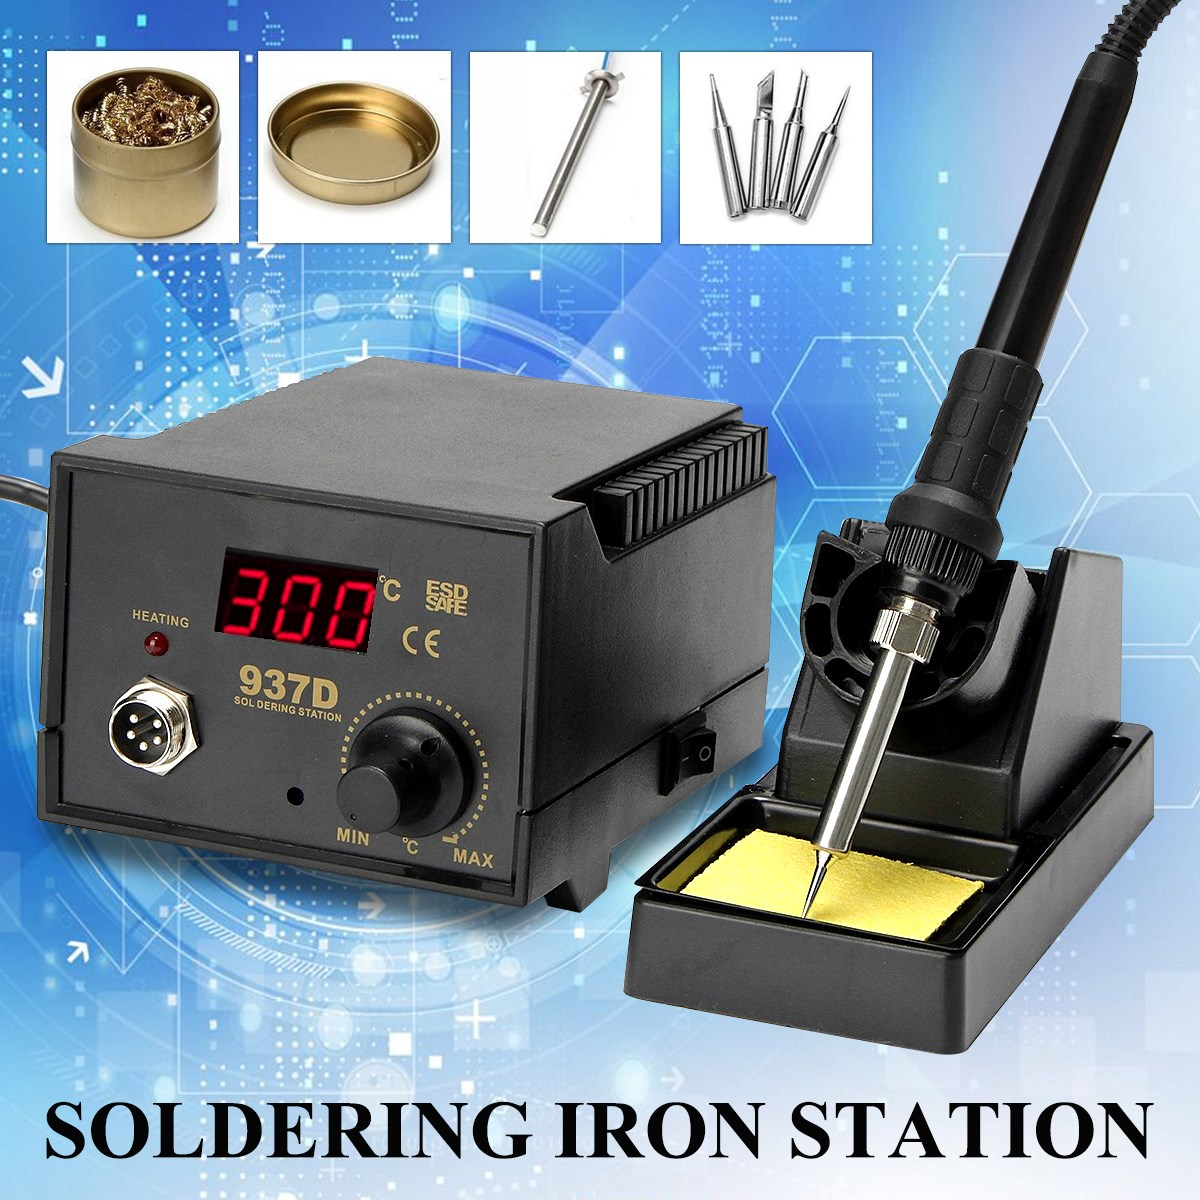 937D 75W Digital Rework Soldering Station Repair Welding Soldering Iron Set with 4 Tips and Cleaner Heating element Tool kit цена